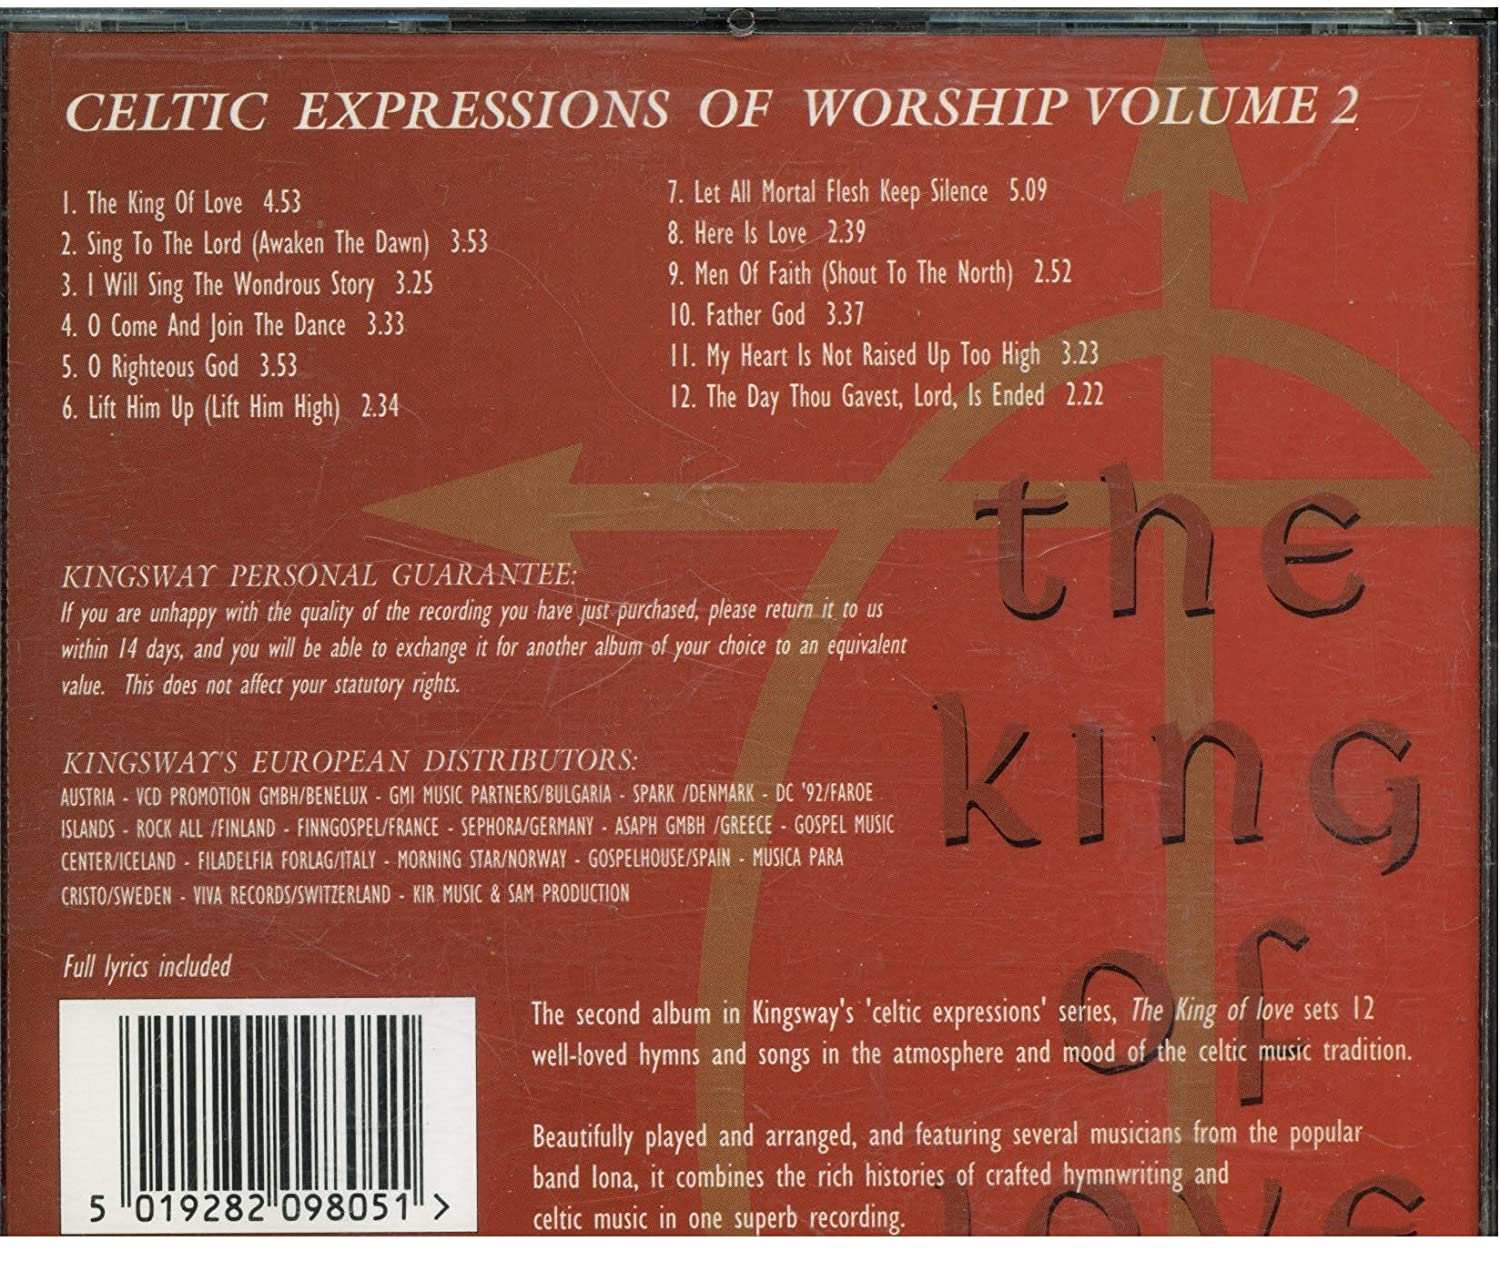 Celtic Expressions of Worship Volume 2 - Amazon com Music